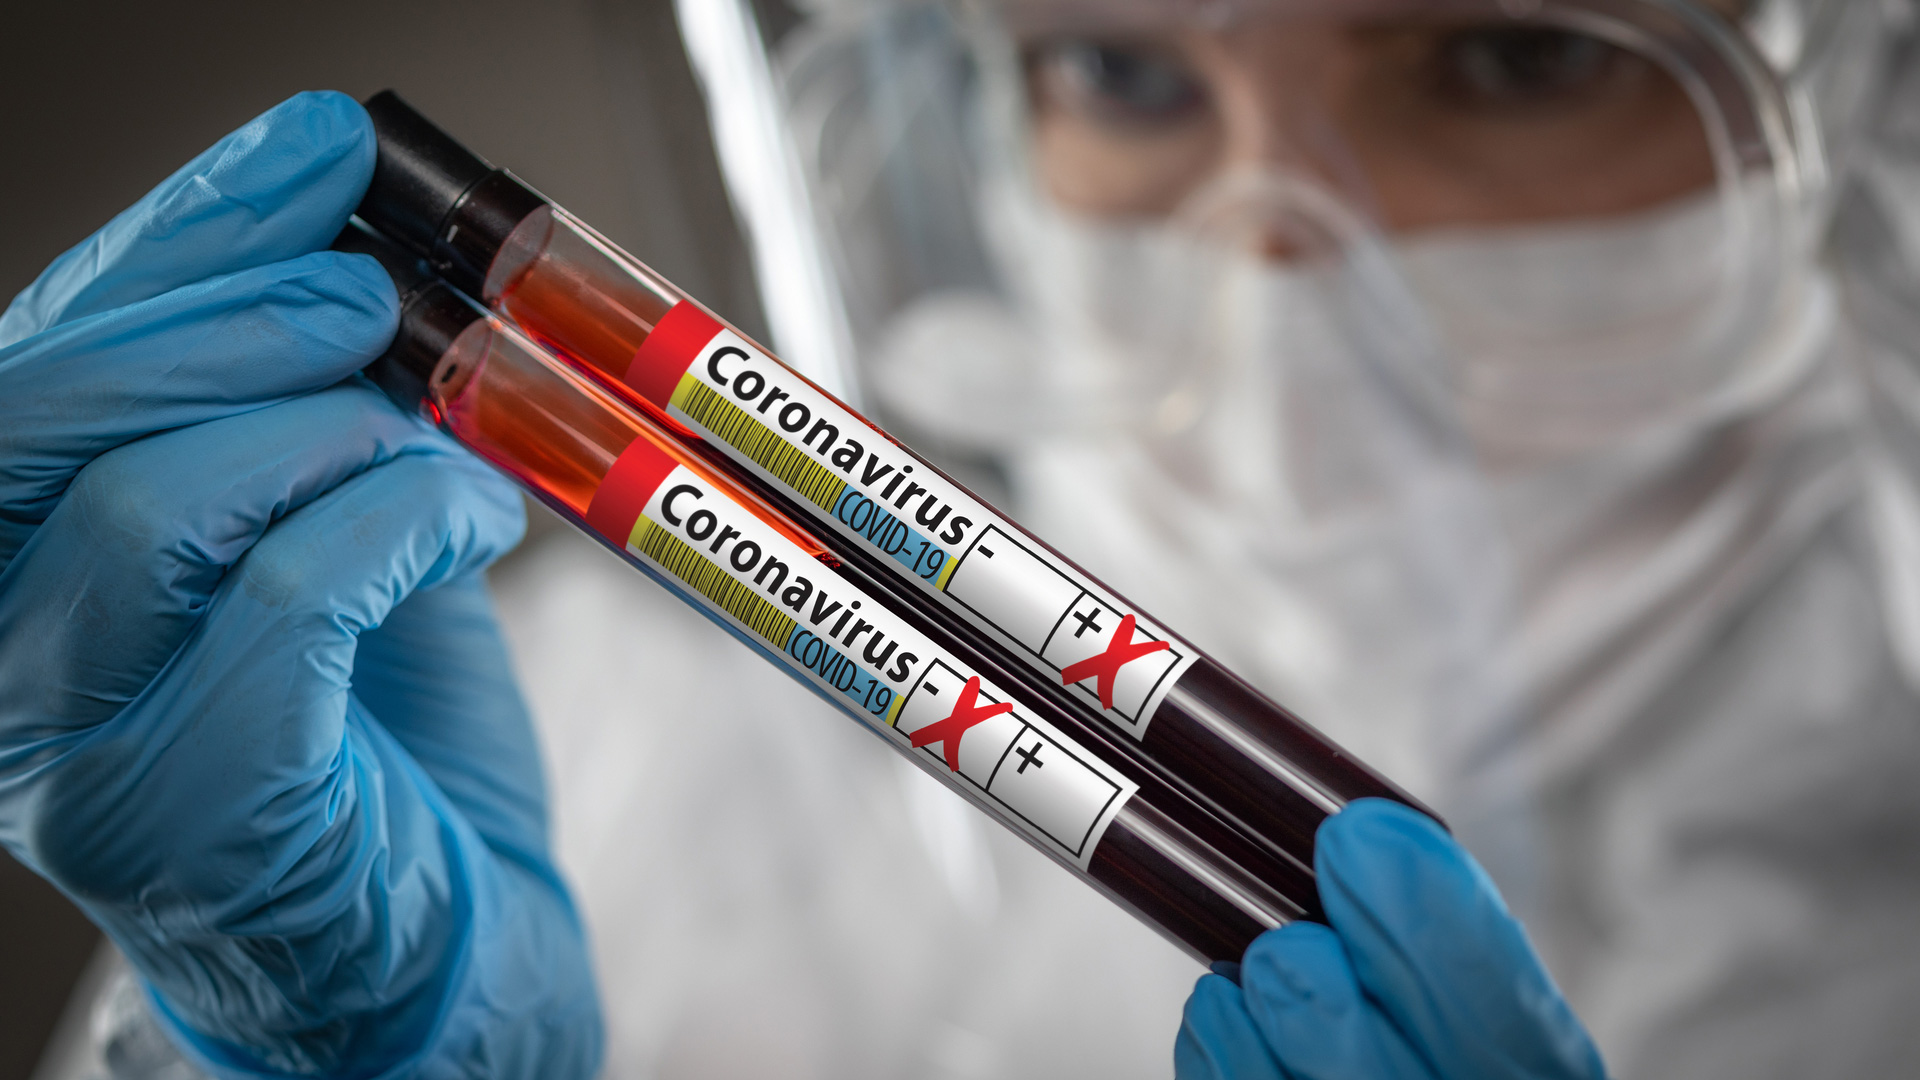 Coronavirus Workplace Health & Safety – What you need to know